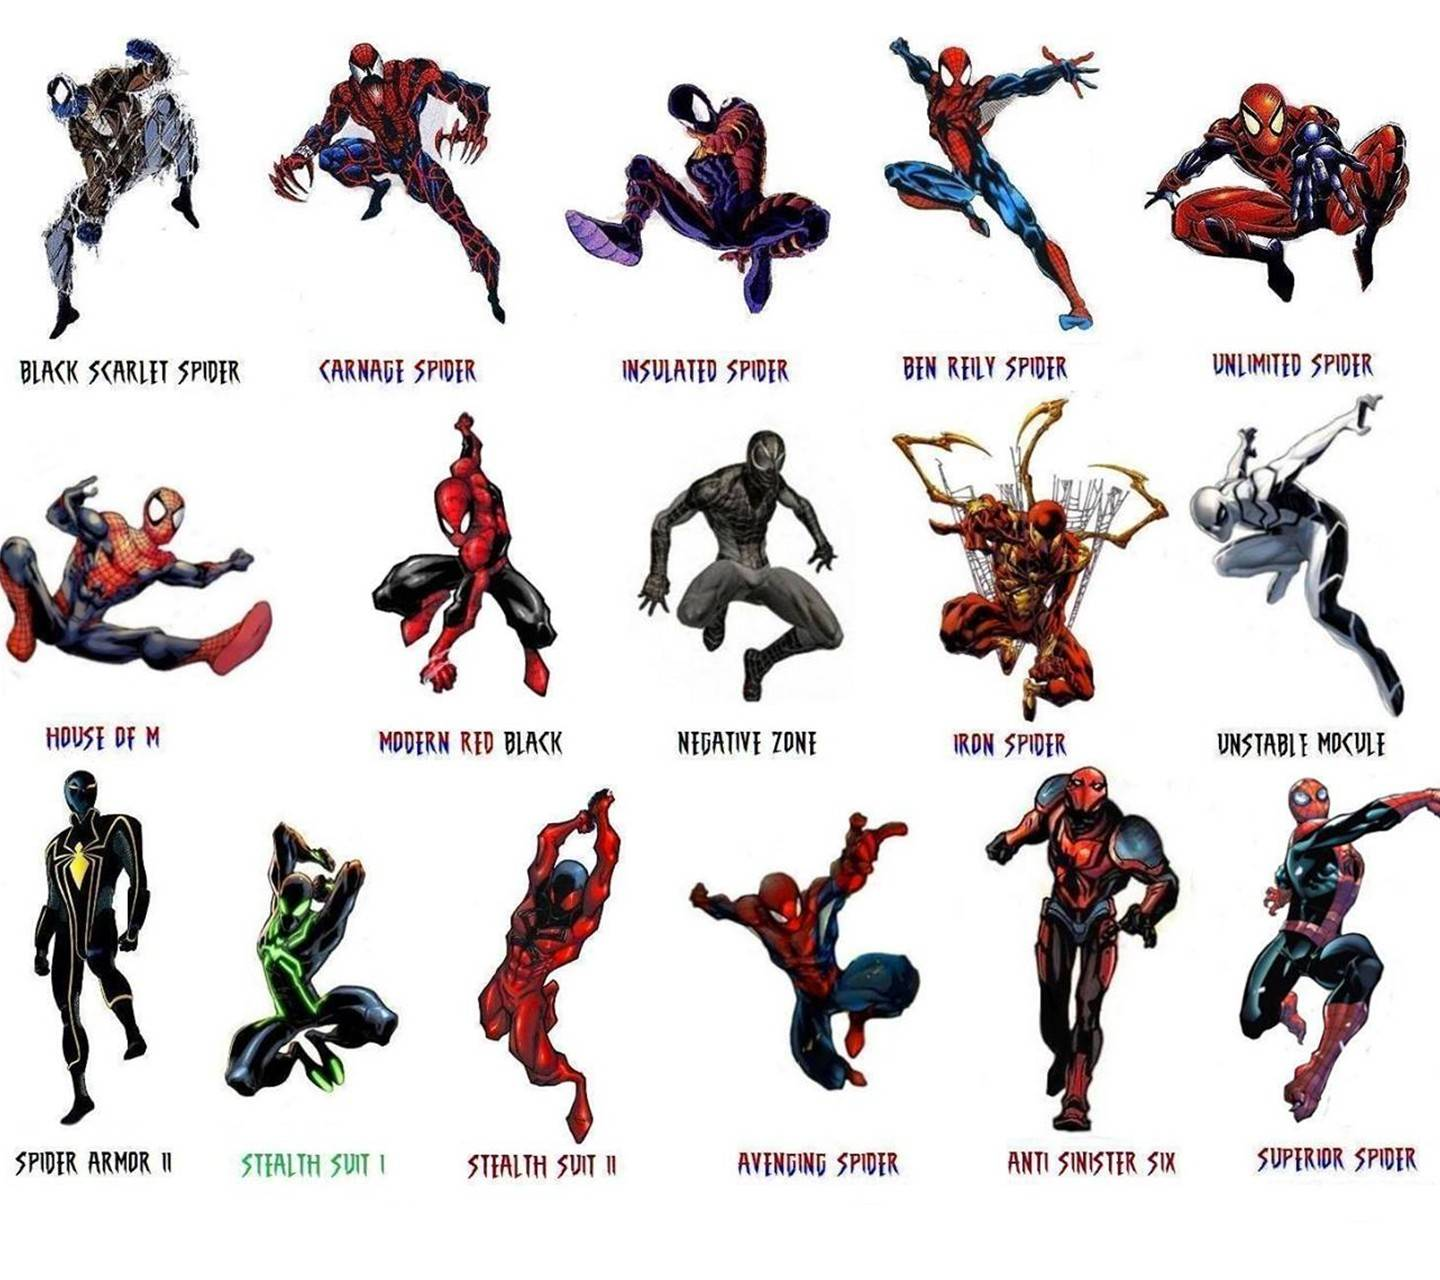 Spiderman Costumes Wallpaper By Rohan Desai Df Free On Zedge